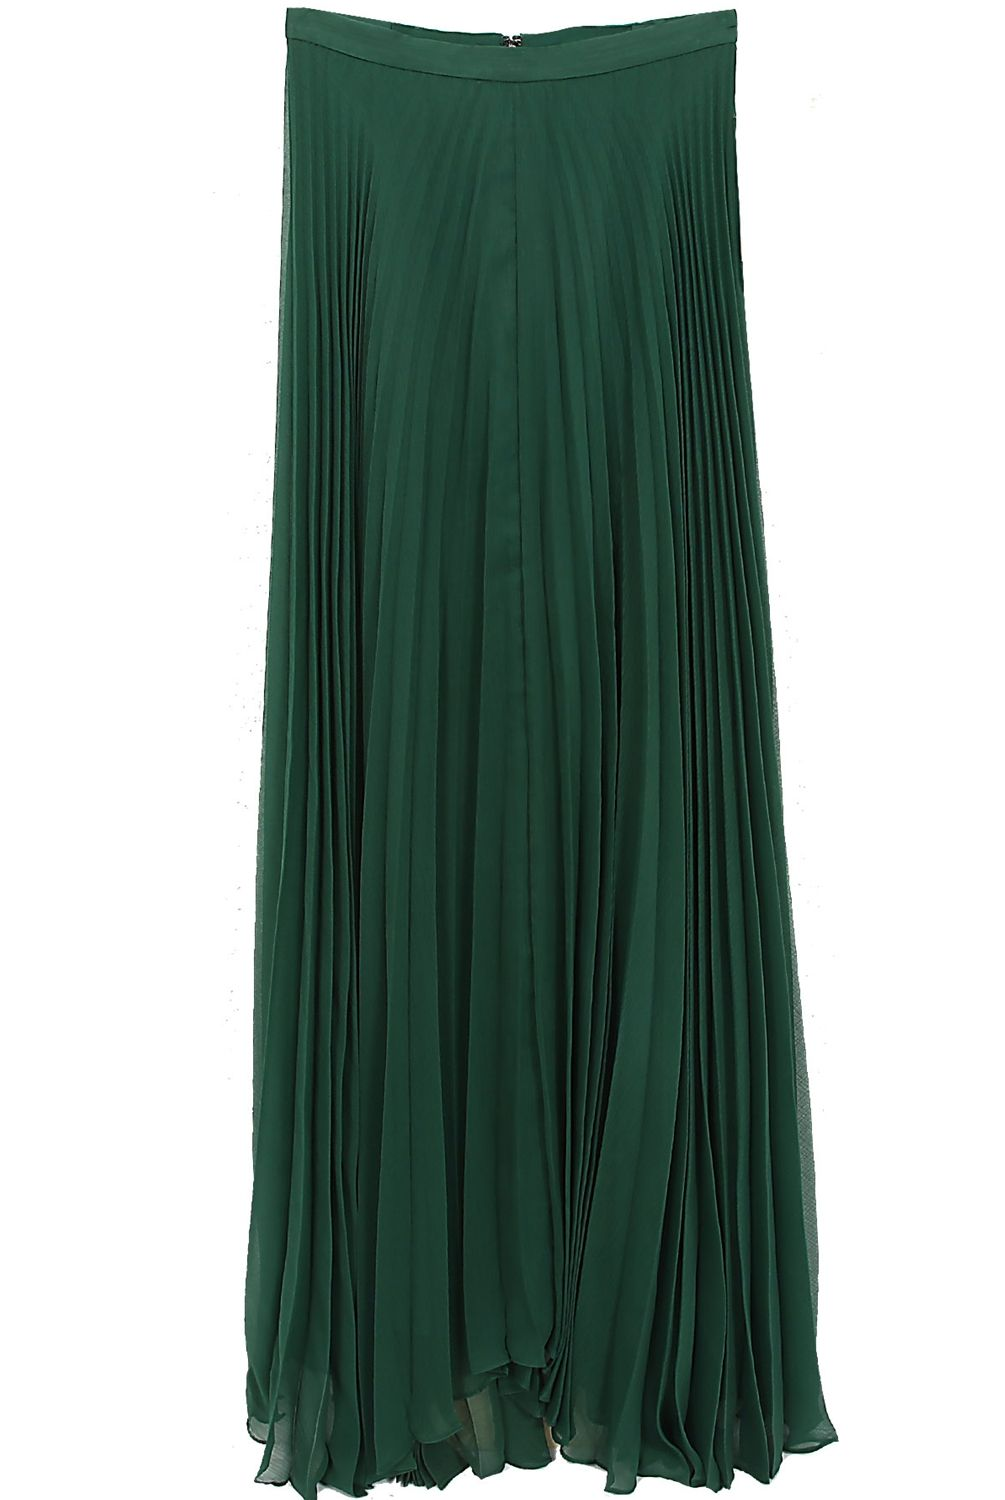 Heaven - Alice + Olivia  Shannon Pleated Maxi Skirt in Emerald